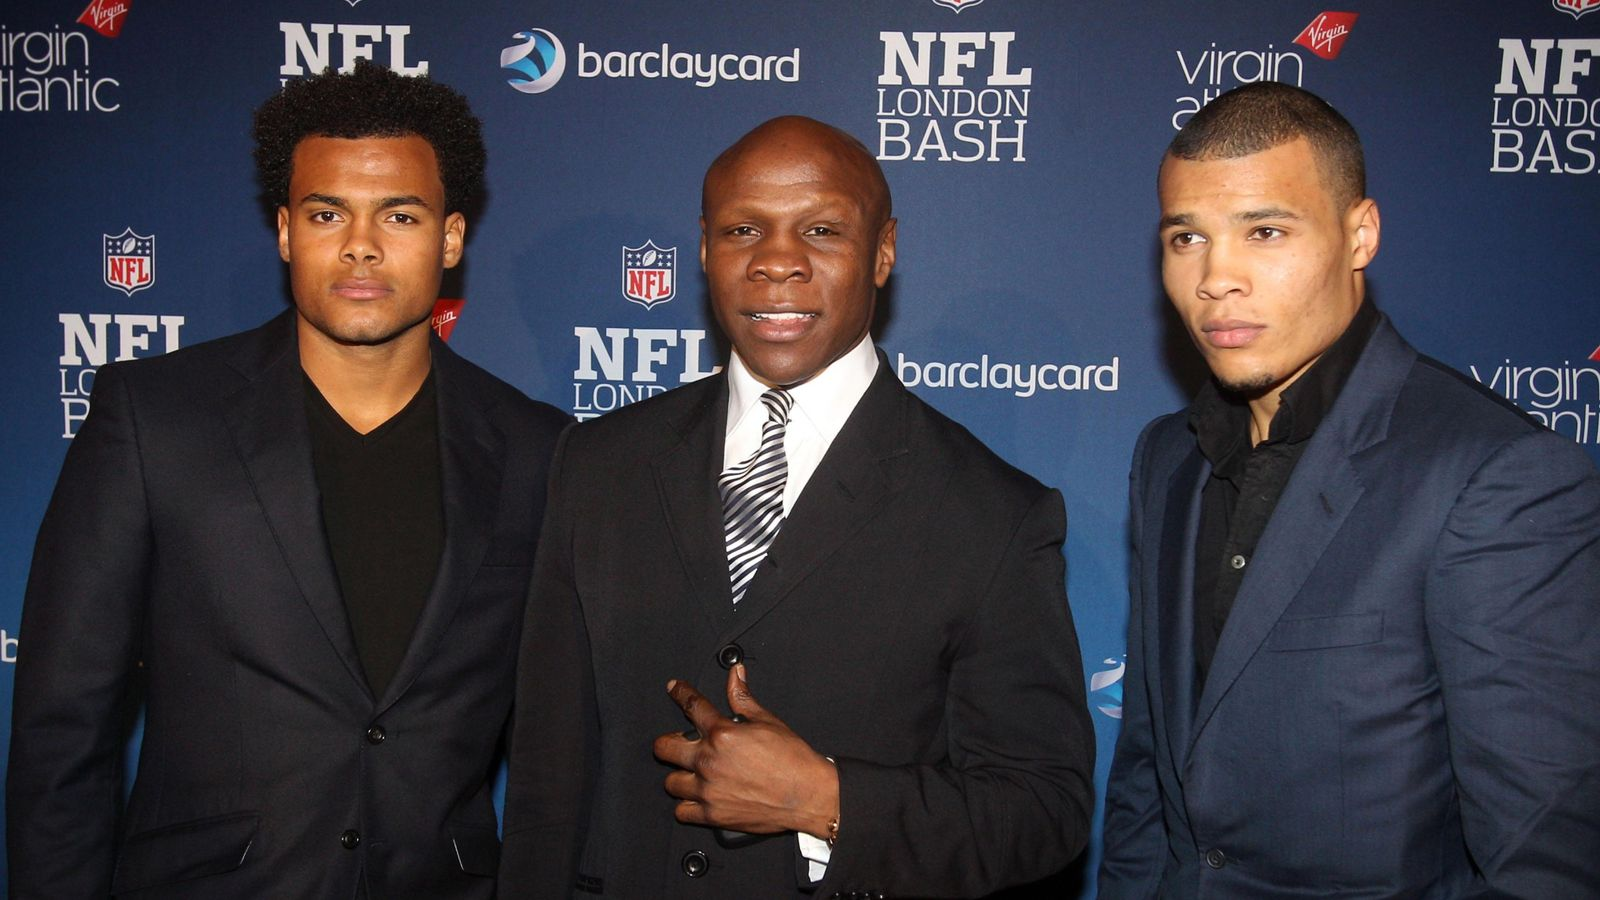 Sebastian Eubank: Chris Eubank Jr opens up about death of his brother – 'I cried the whole day'